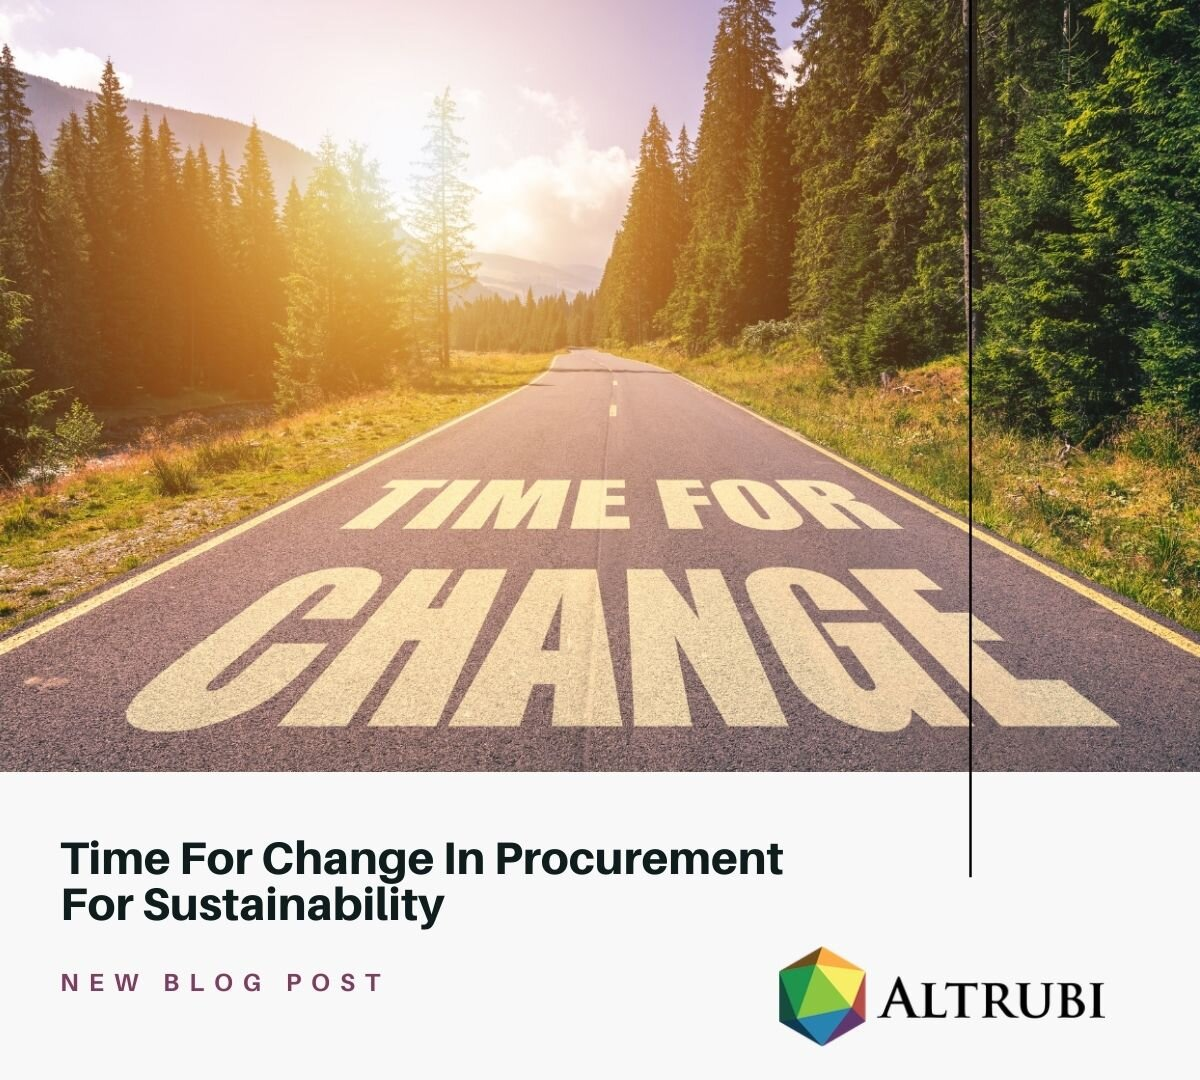 Time for Change - Procurement for sustainability